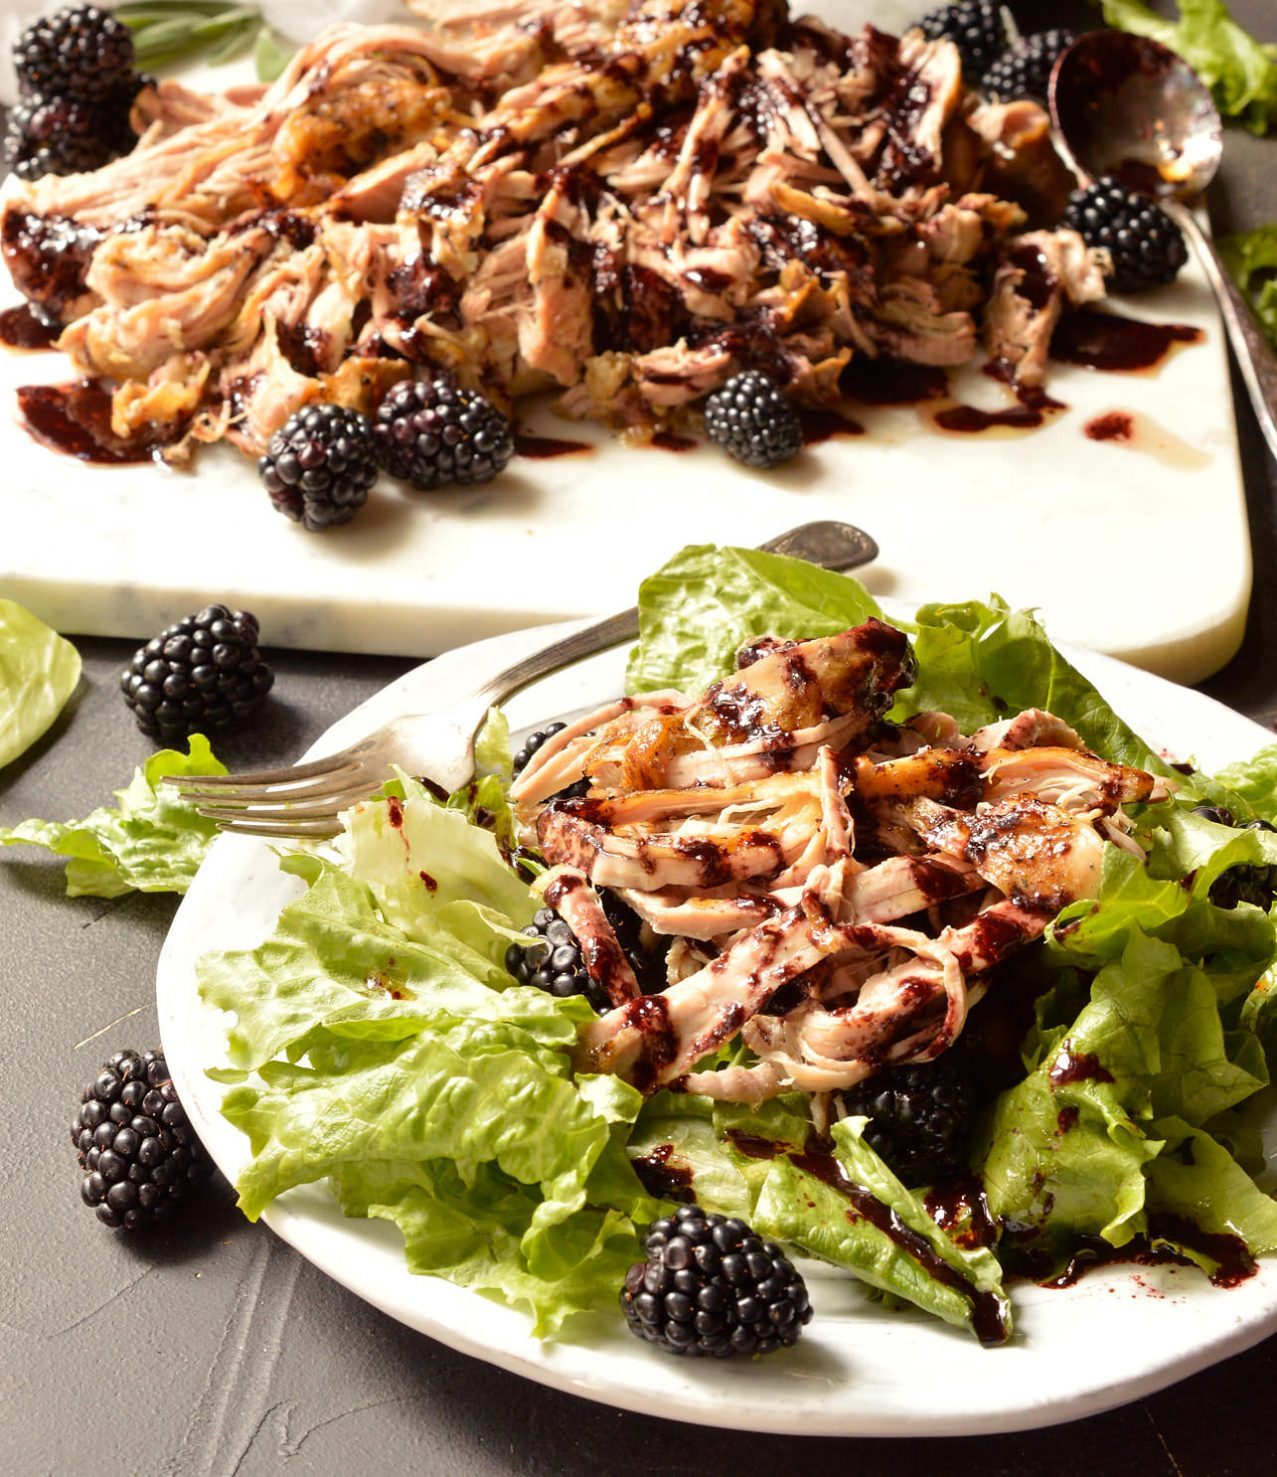 For a simple yet unique pork dinner recipe, look no further. This Slow Cooker Pork Tenderloin is fall apart tender and topped with a vibrant Balsamic Blackberry Sauce. Serve this over a fresh salad for a Whole30 Paleo compliant meal. If you are not following a special diet this shredded pork is great on sandwiches or tacos! #whole30recipes #paleo #porktenderloin #slowcooker